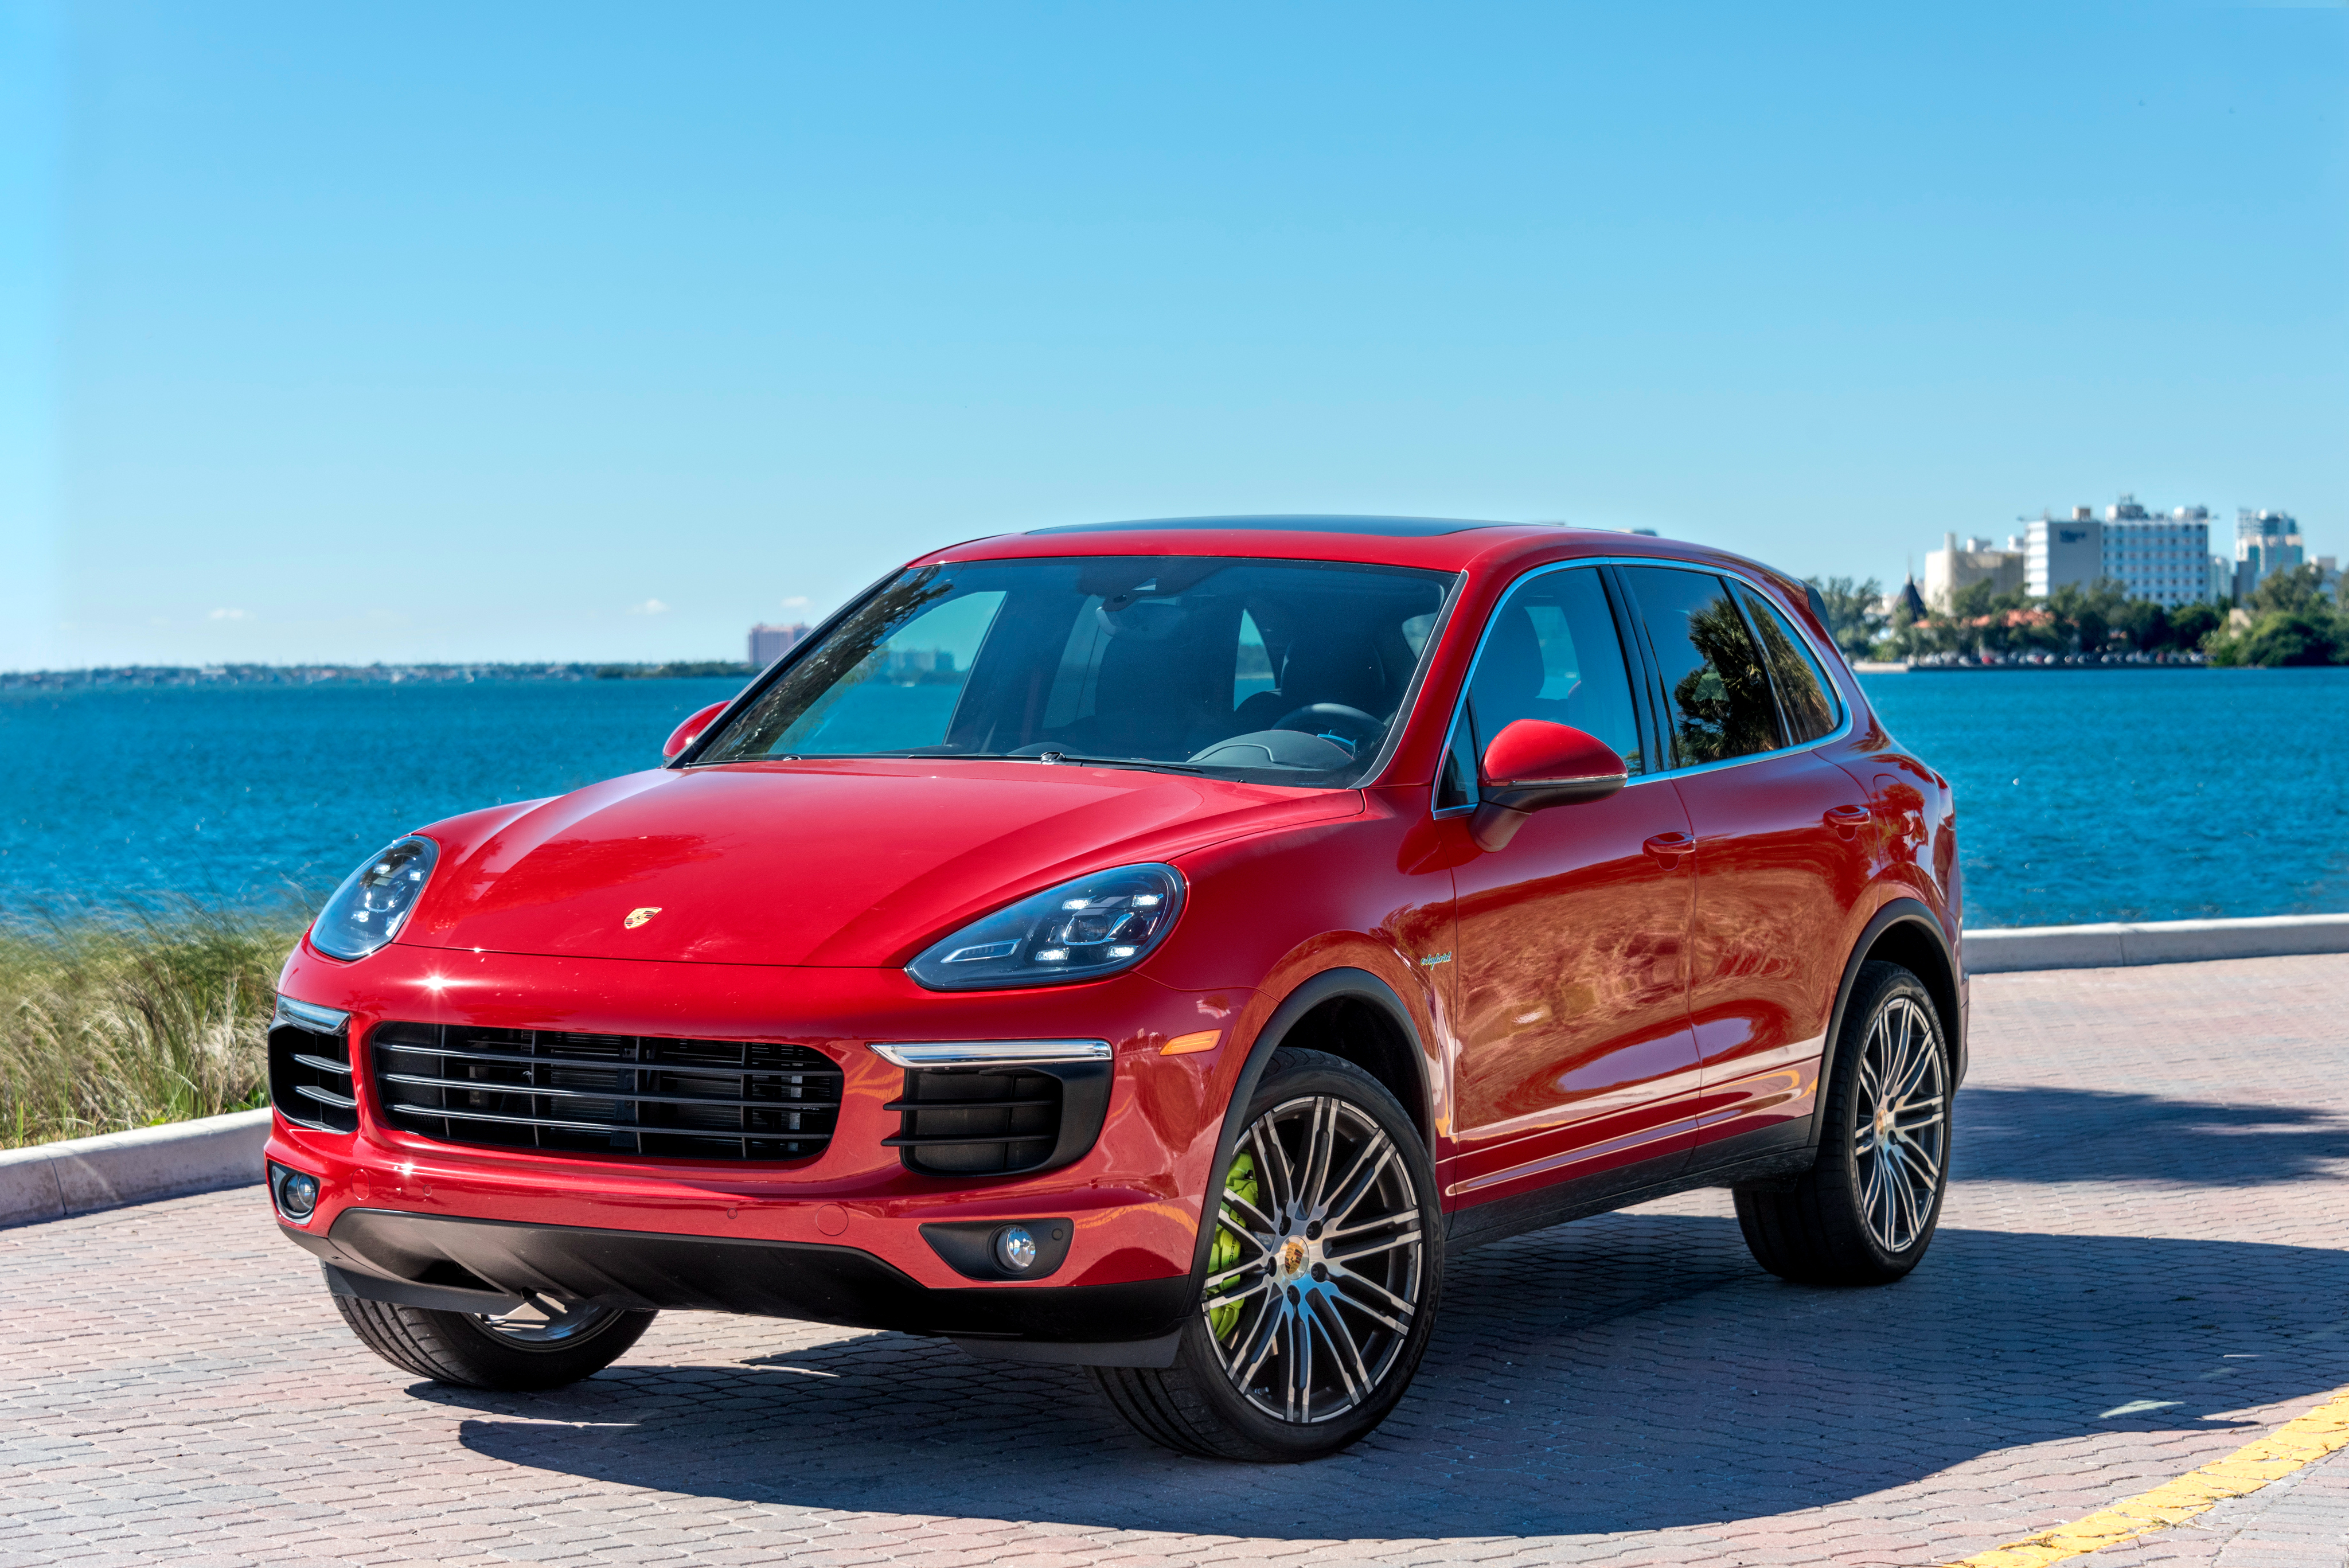 61 Porsche Cayenne HD Wallpapers Background Images 4096x2734